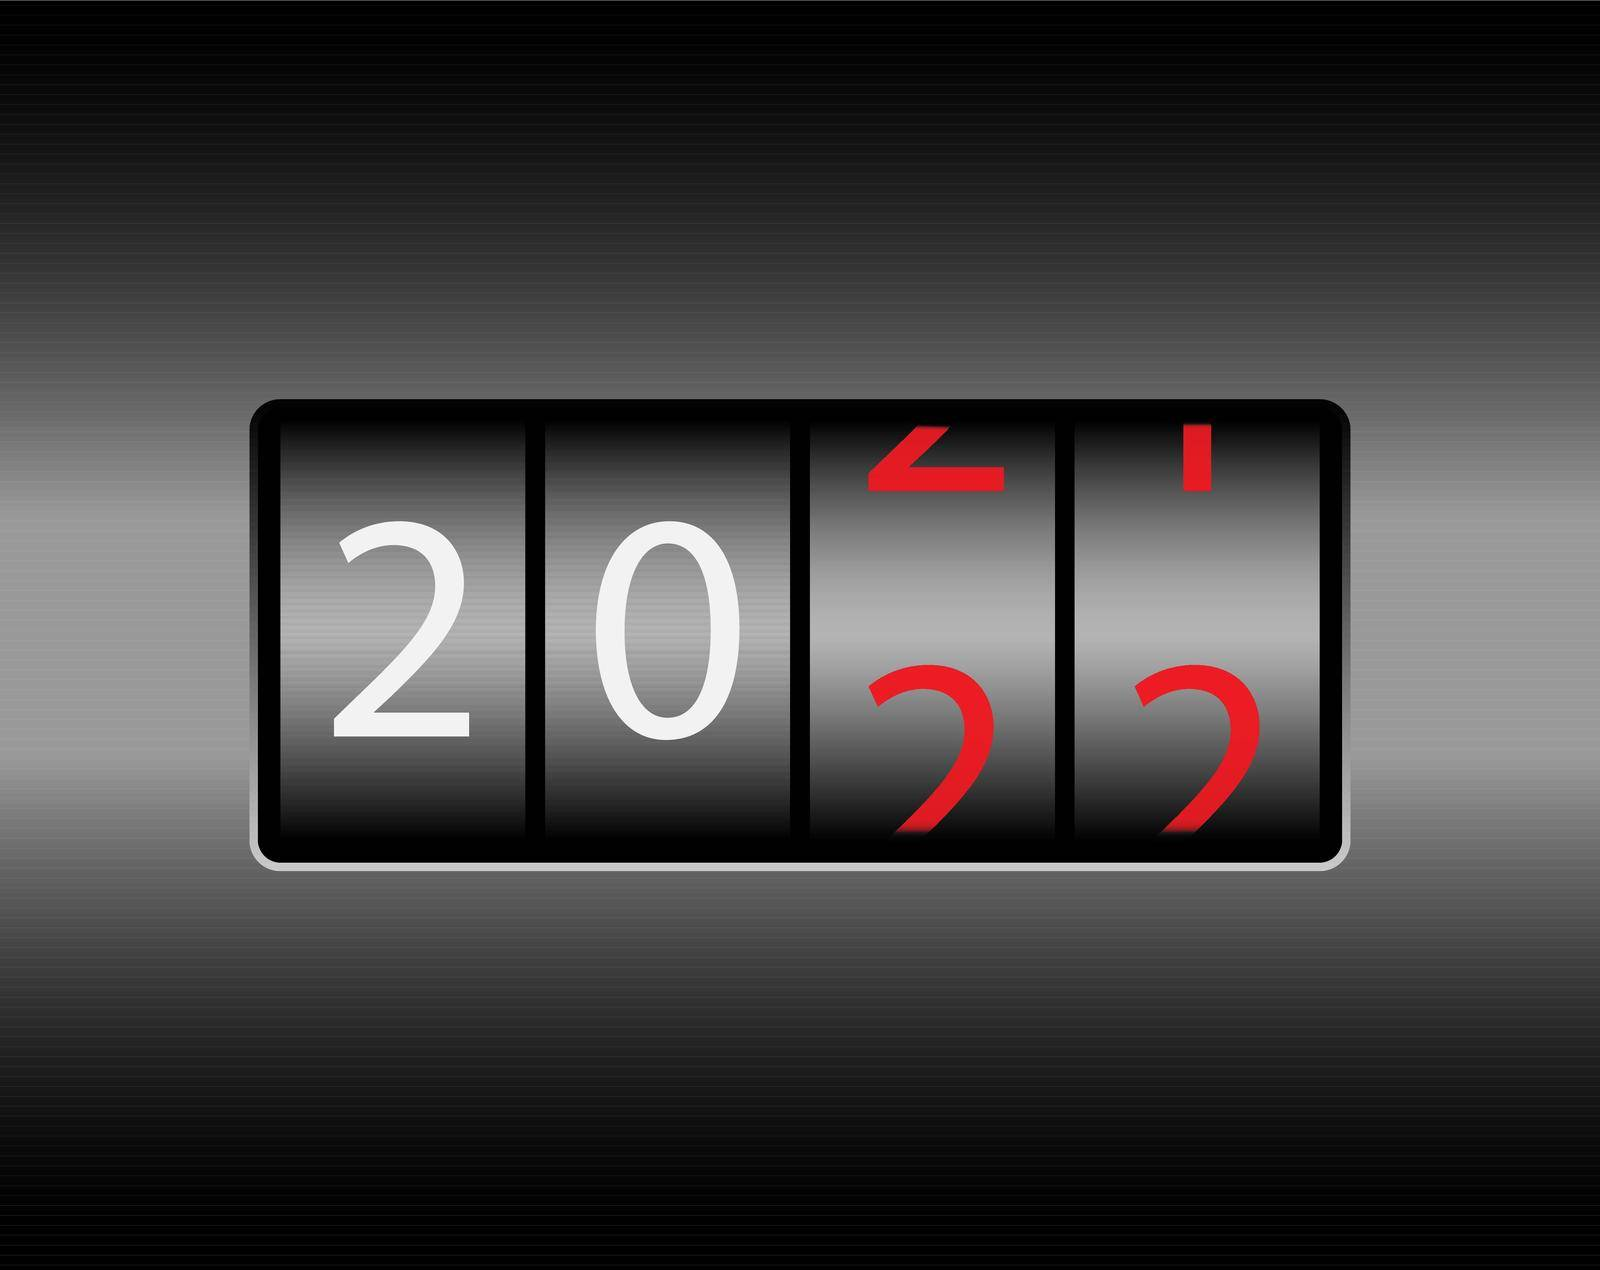 Odometer with the numbers 2022. New year 2022 is on the odometer. Merry Christmas and Happy New Year. Vector illustration. by Grommik